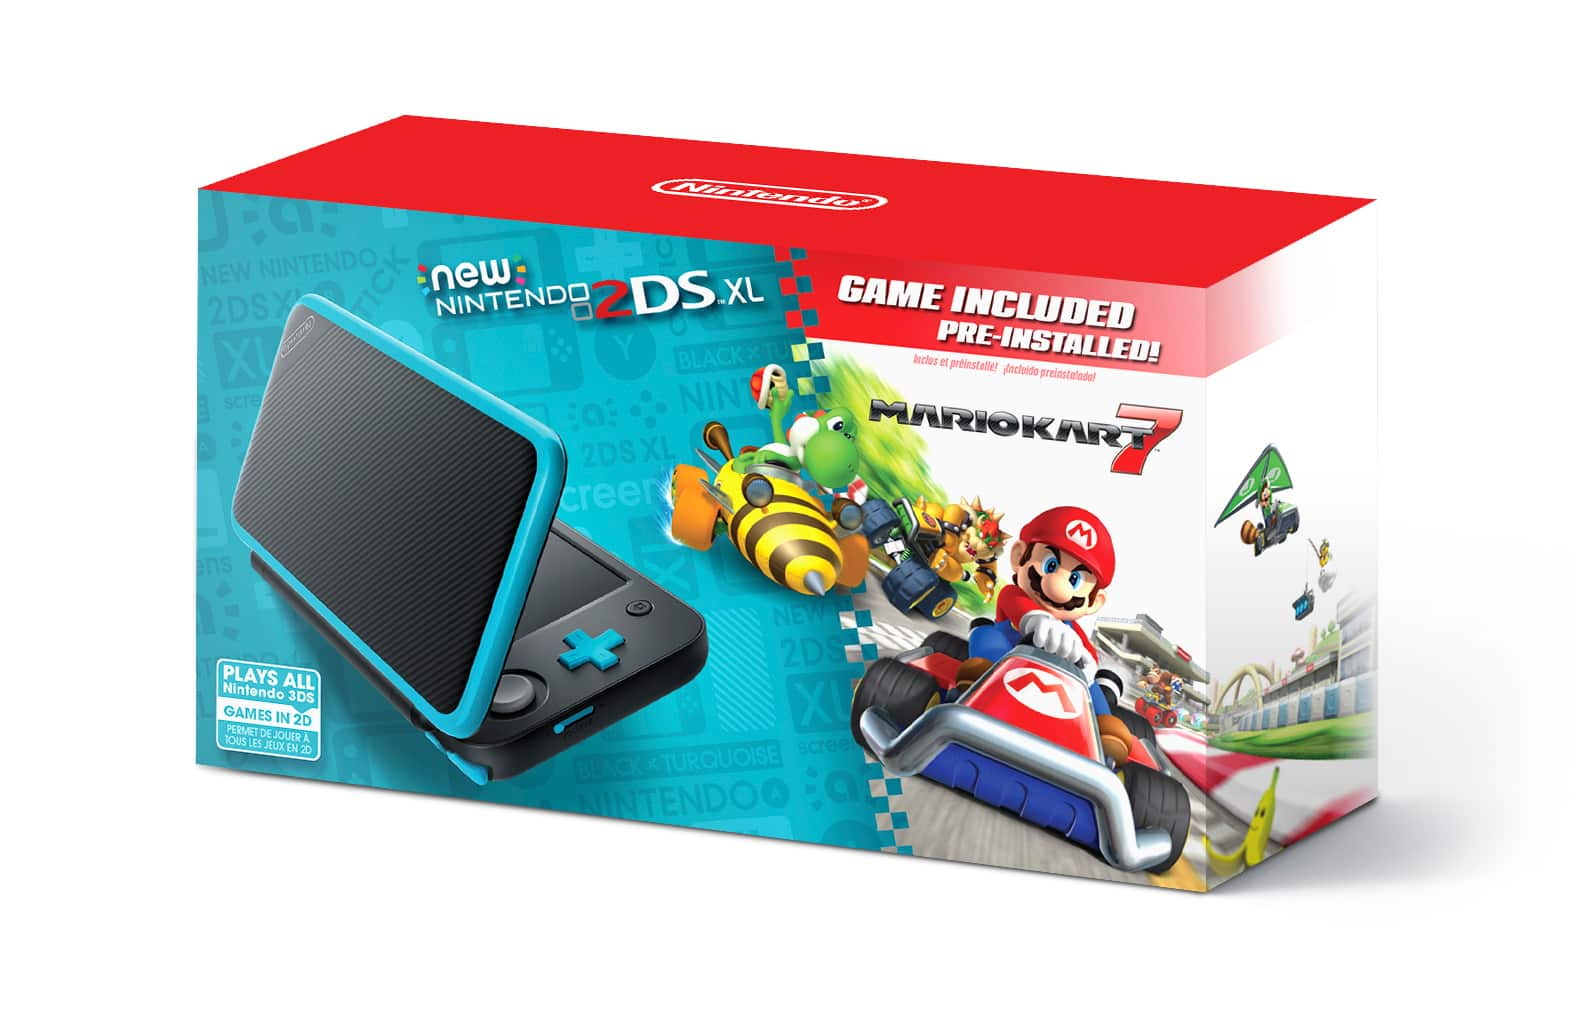 Nintendo 2DS XL System w/ Mario Kart 7 Pre-installed, Black & Turquoise $99.99